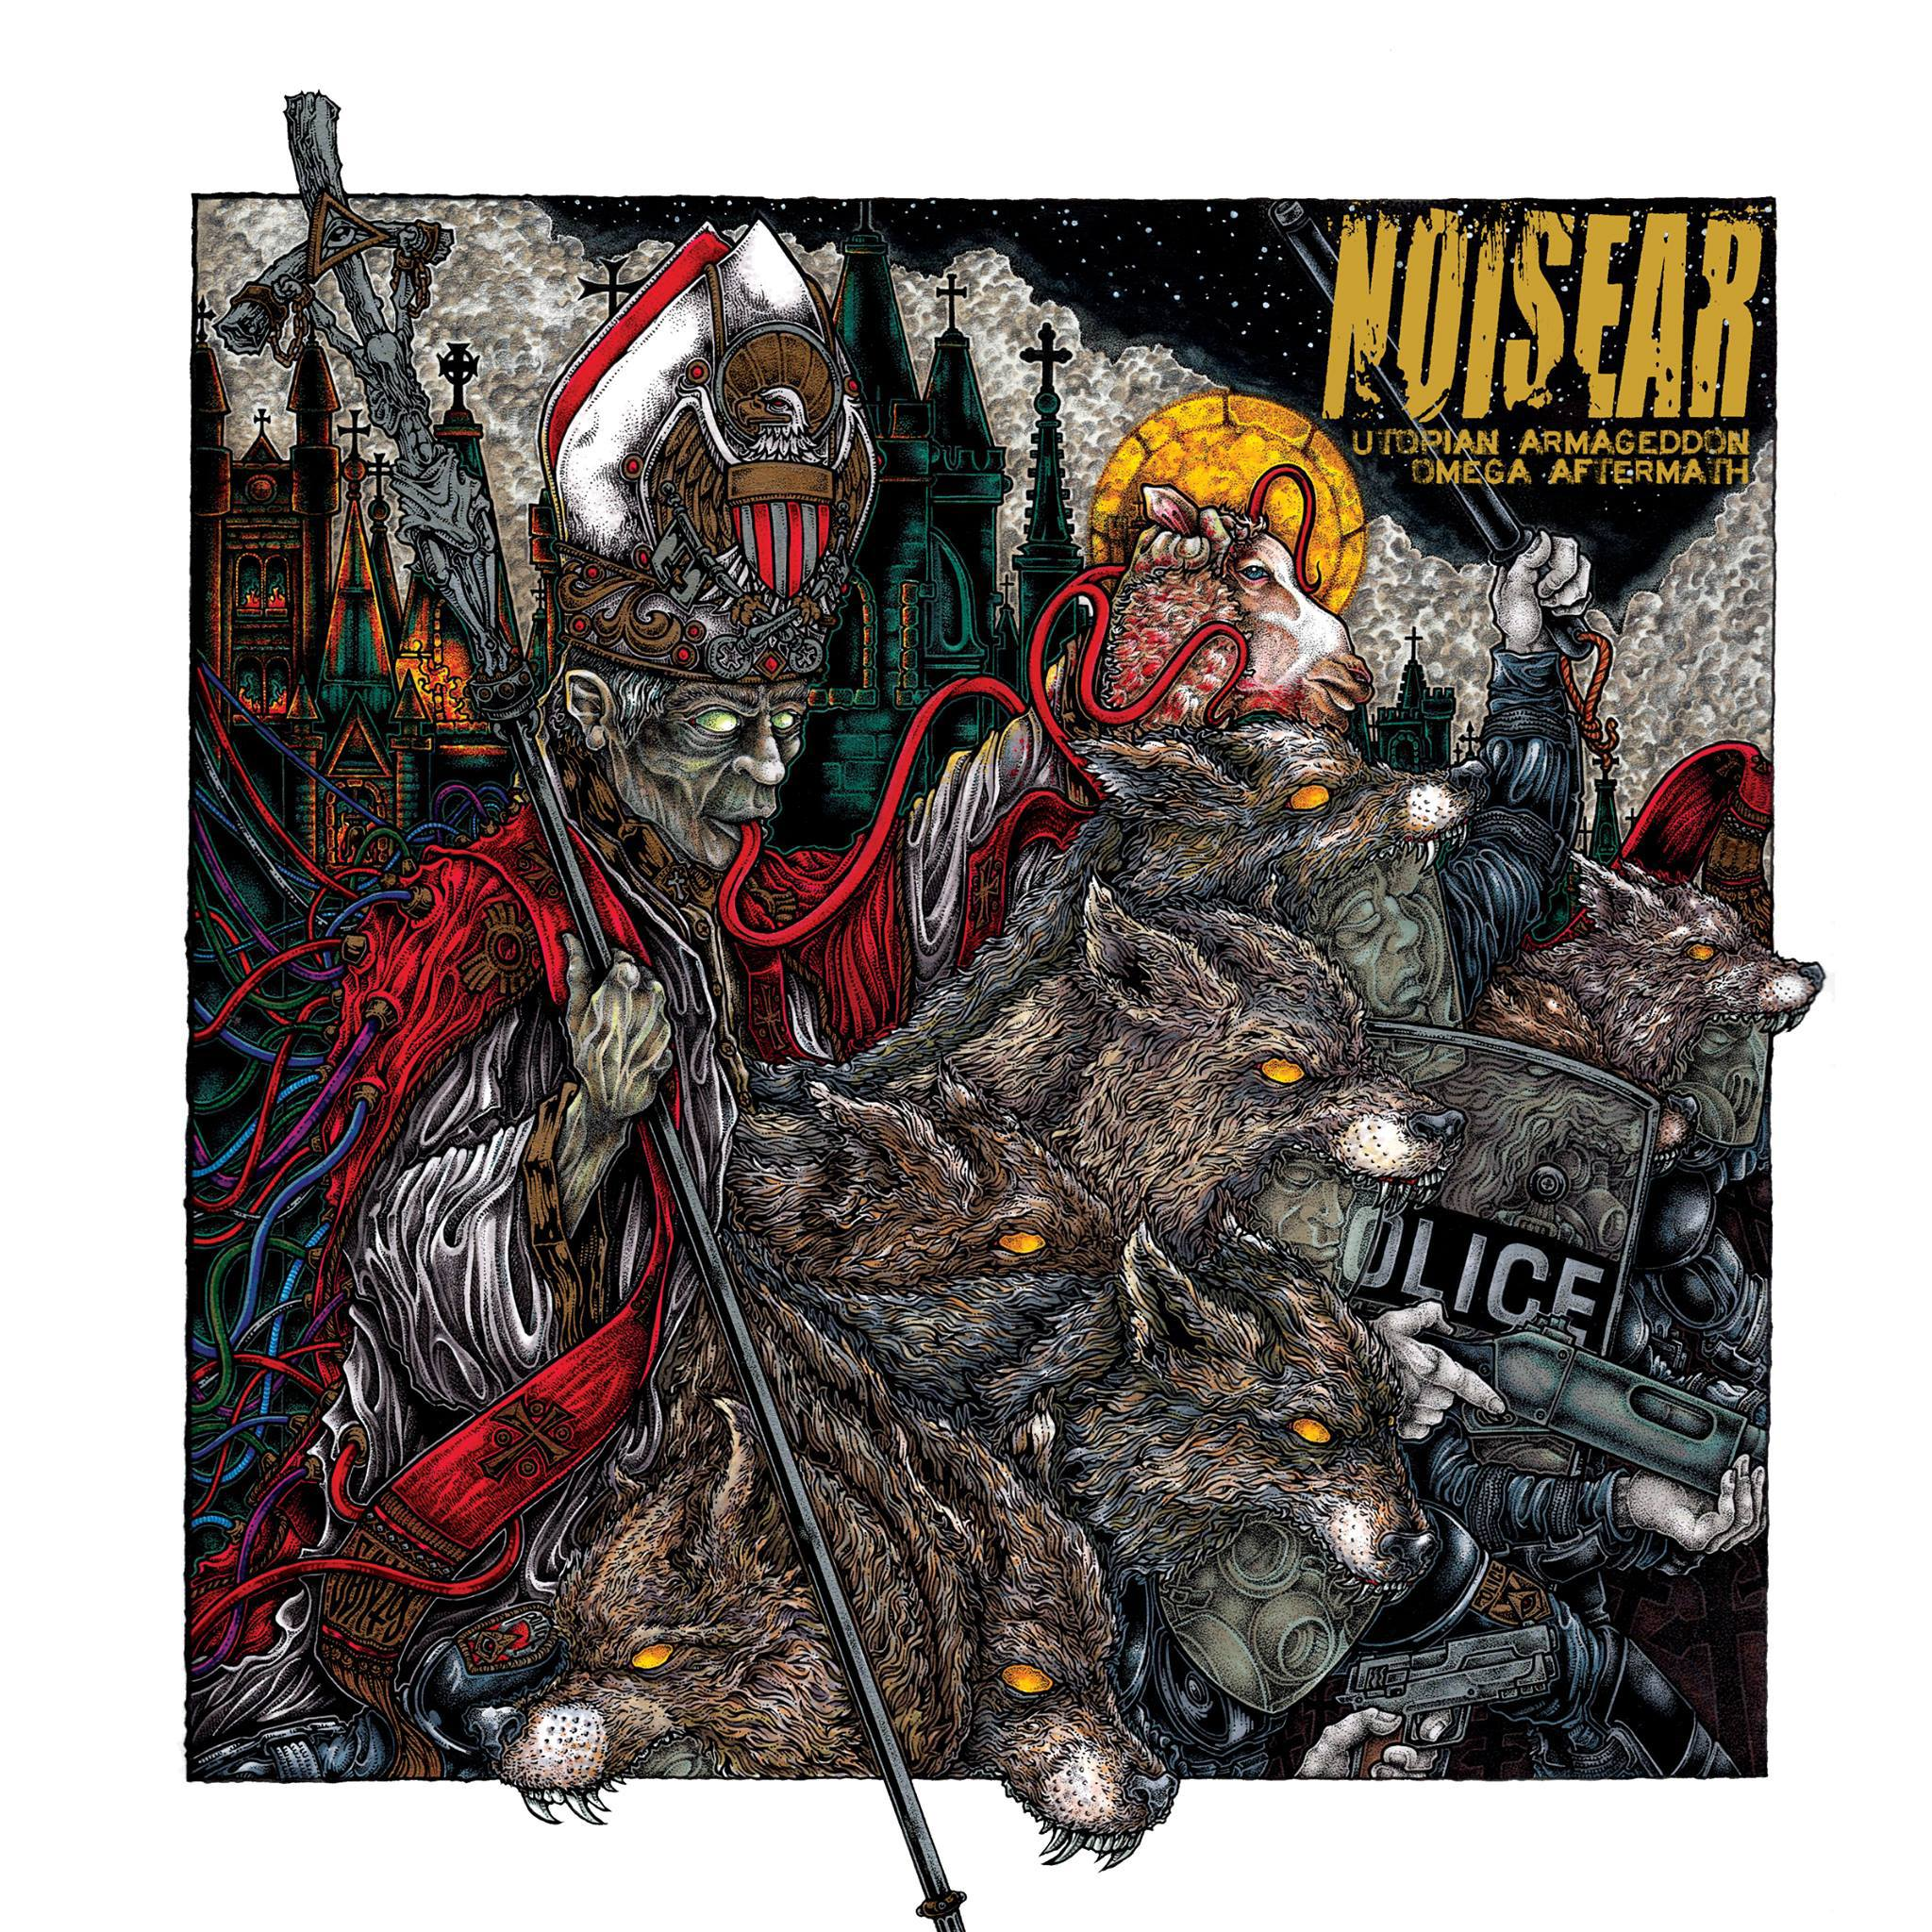 "NOISEAR - ""Utopian Armageddon/Omega Aftermath"" - LP/CD cover by John Santos"